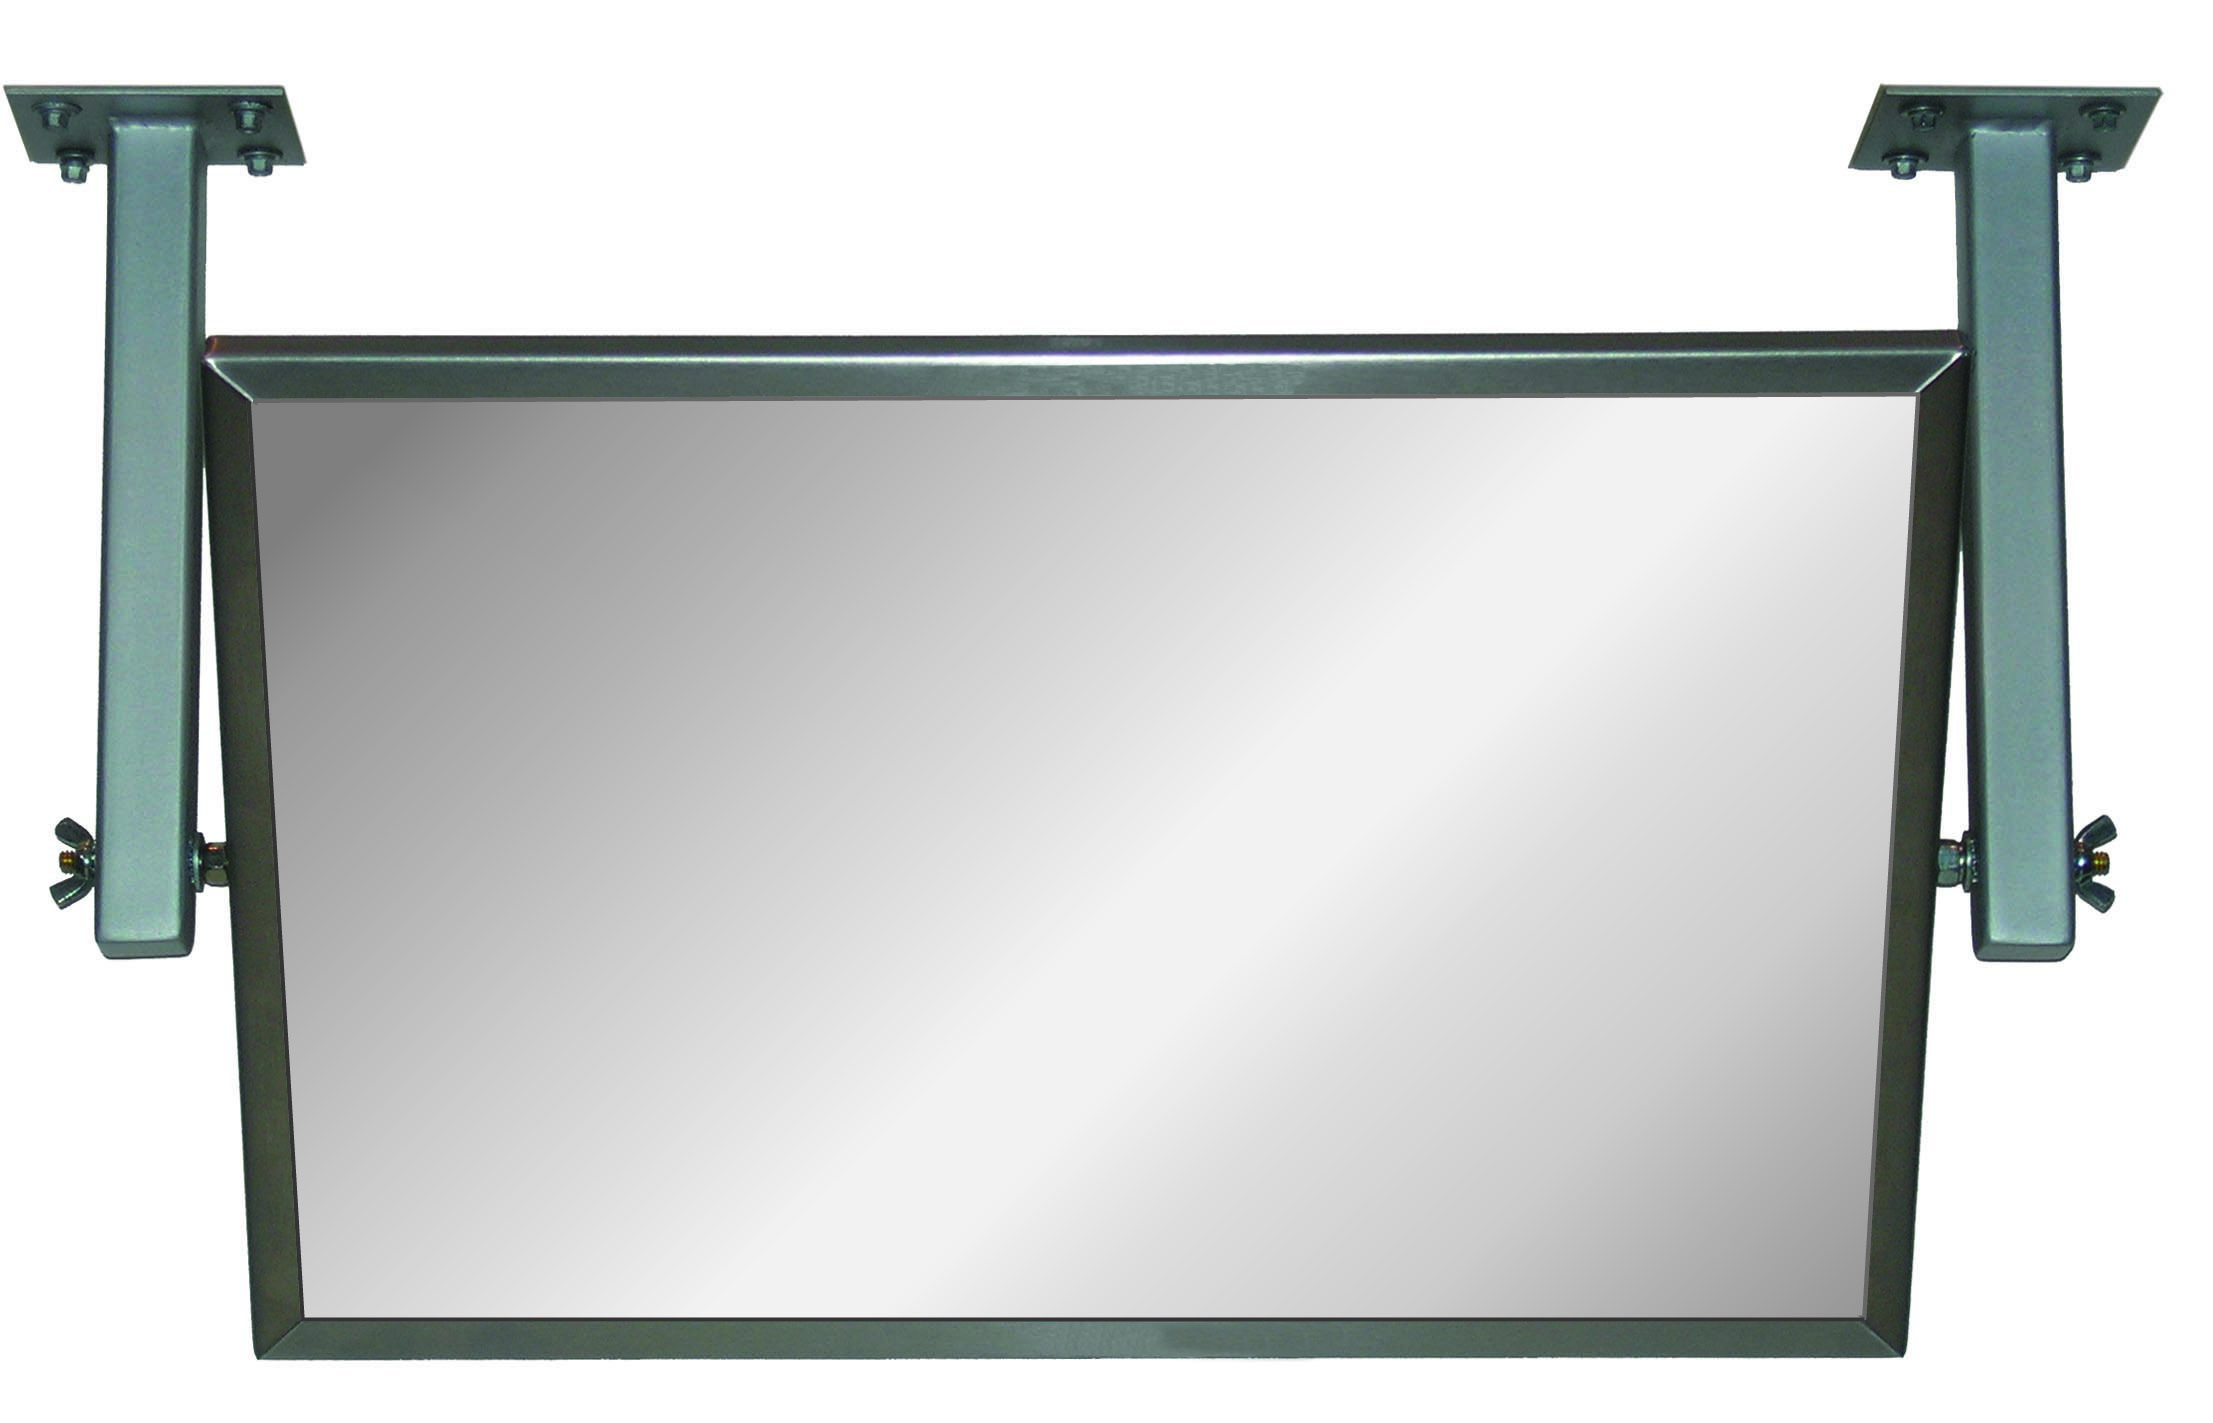 Adjustable Angle Demonstration Mirror